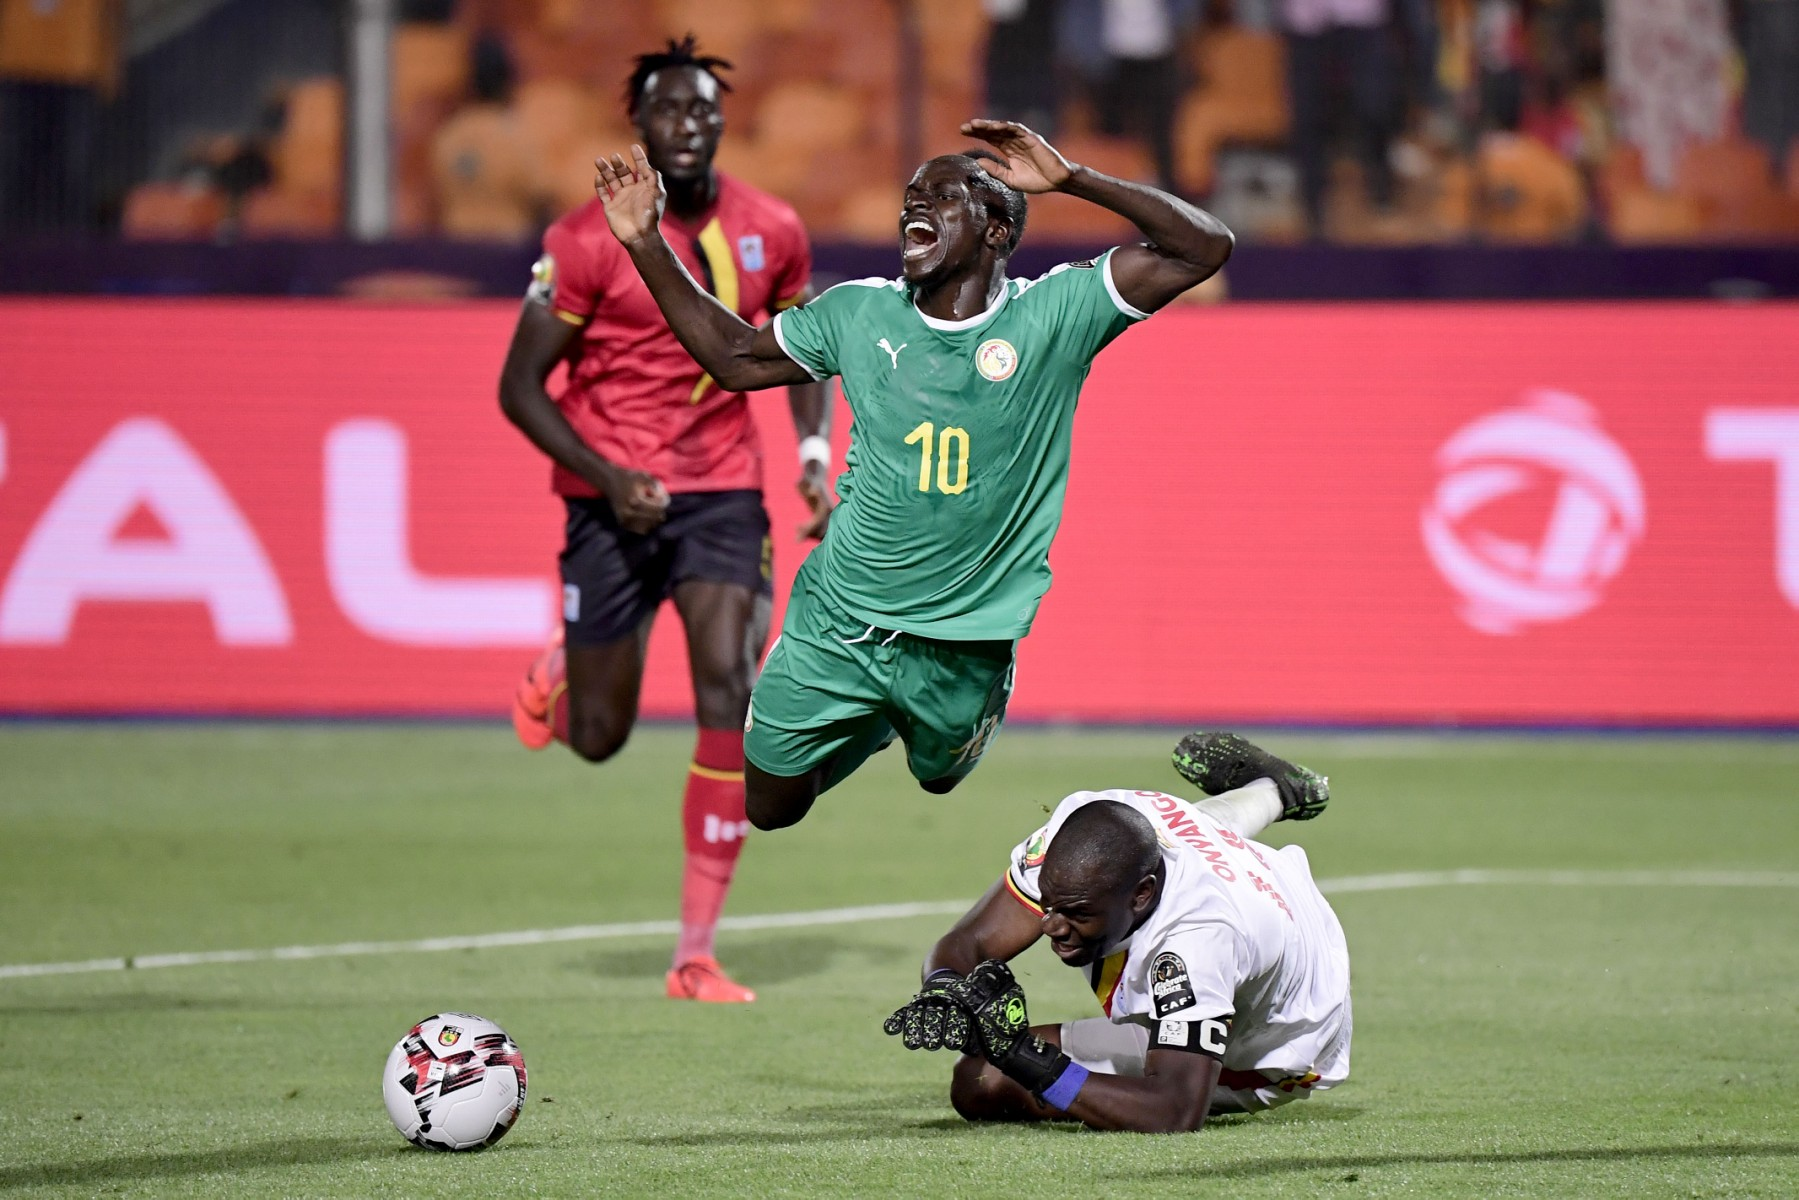 Uganda's goalkeeper Denis Onyango (below) fouls Senegal's forward Sadio Mane (C) during the 2019 Africa Cup of Nations (CAN) Round of 16 football match between Uganda and Senegal at the Cairo International Stadium in the Egyptian capital on July 5, 2019. (Photo by JAVIER SORIANO / AFP)